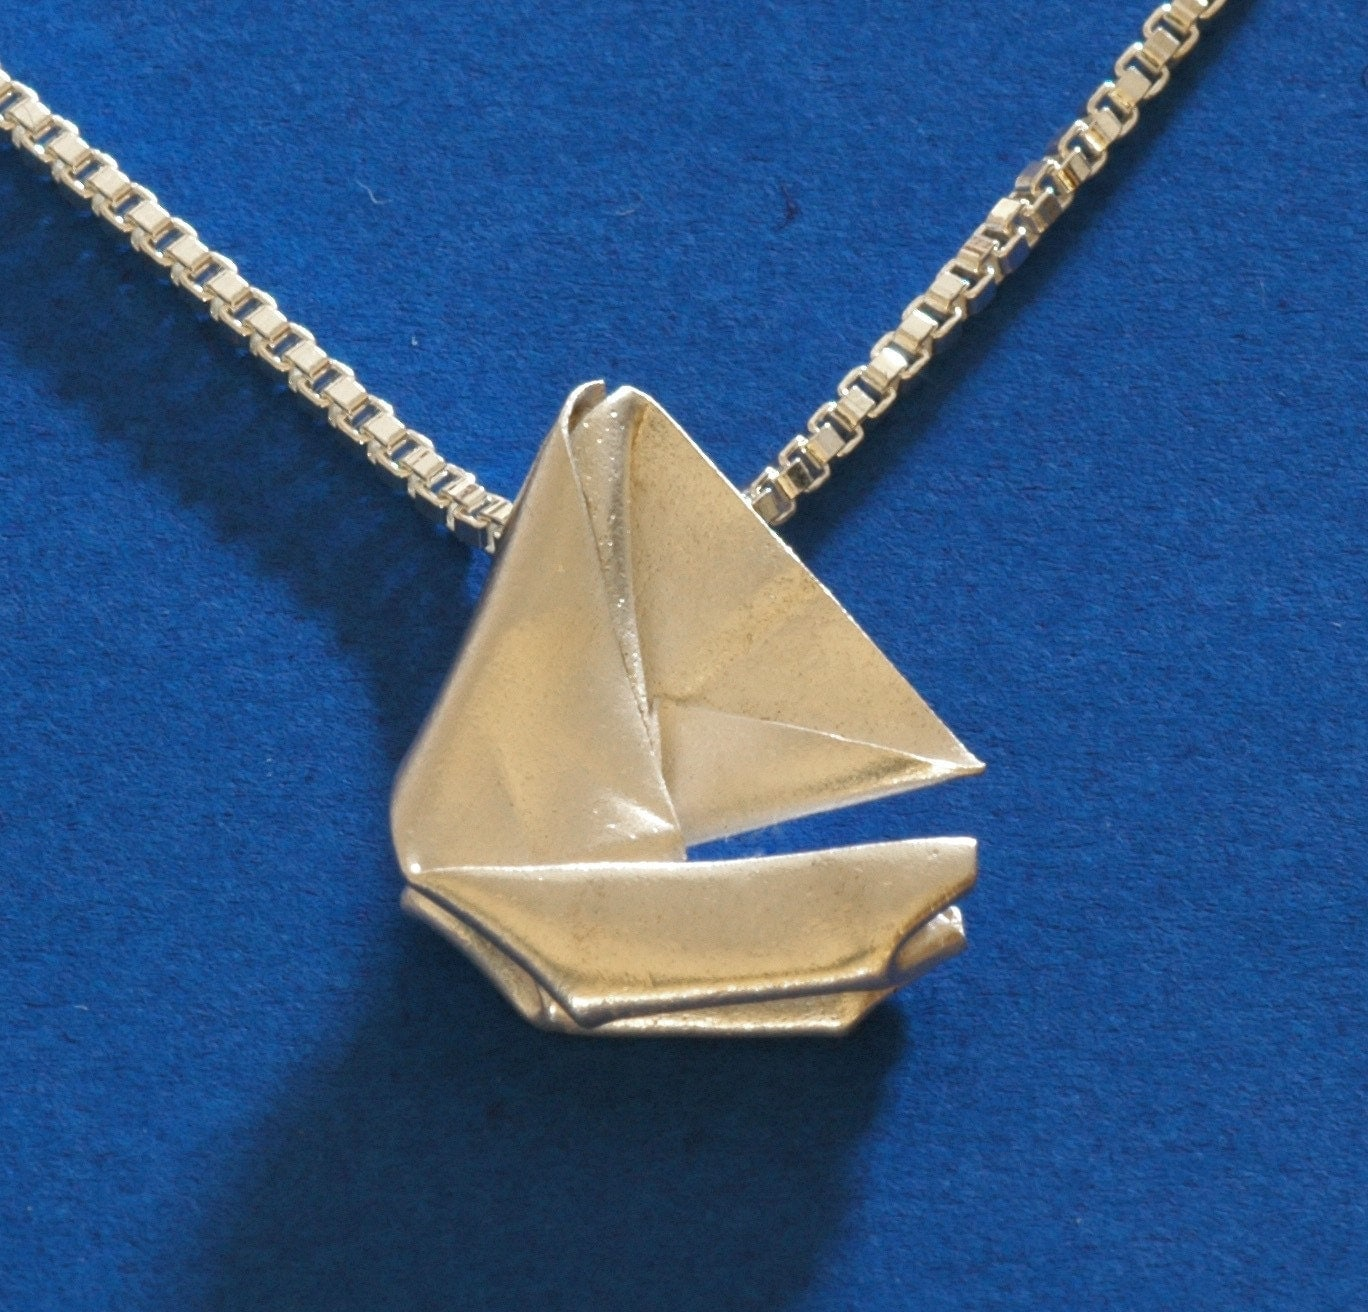 RESERVED for STARBIRD - Sailing Away - Catamaran Pendant (Metal Origami Sculpture on a Sterling Silver Necklace)